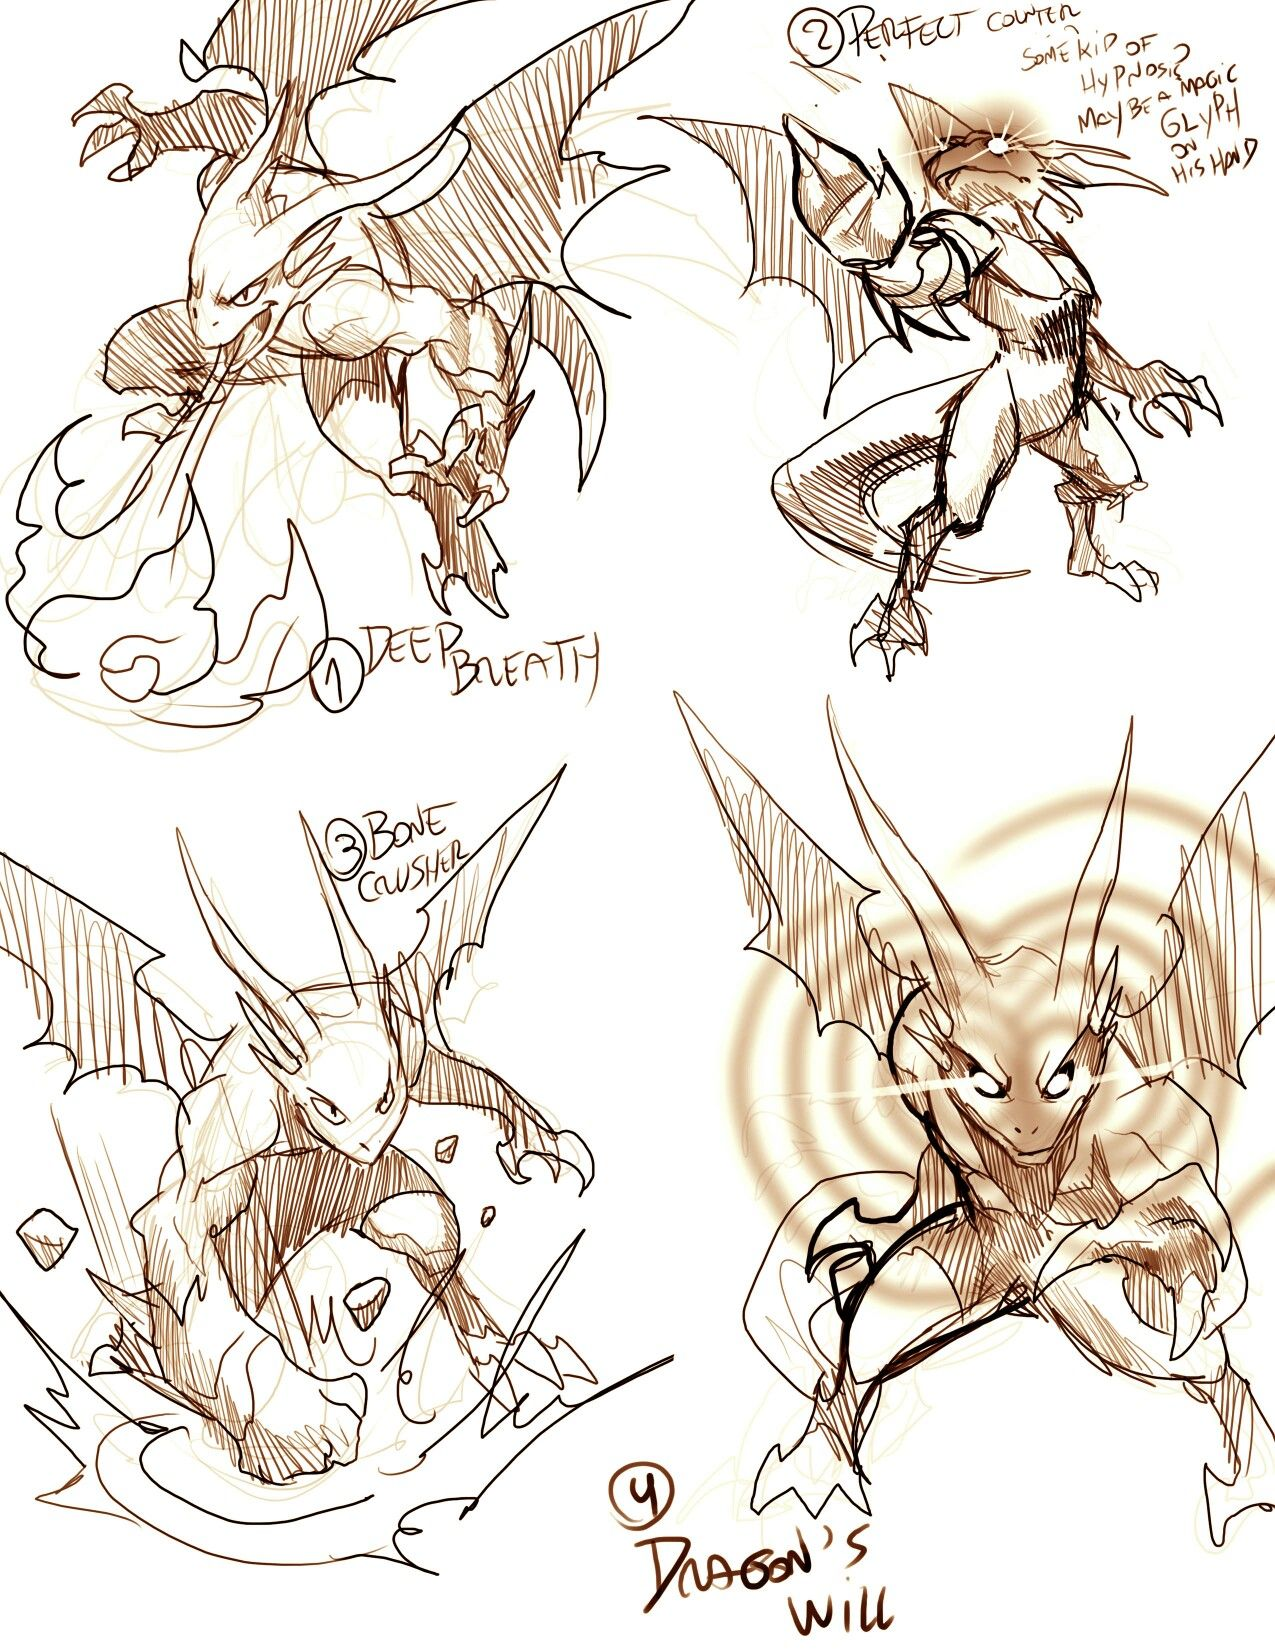 Anthro Dragon, Battle Poses, Positions, Text, Attacks; How To Draw Manga